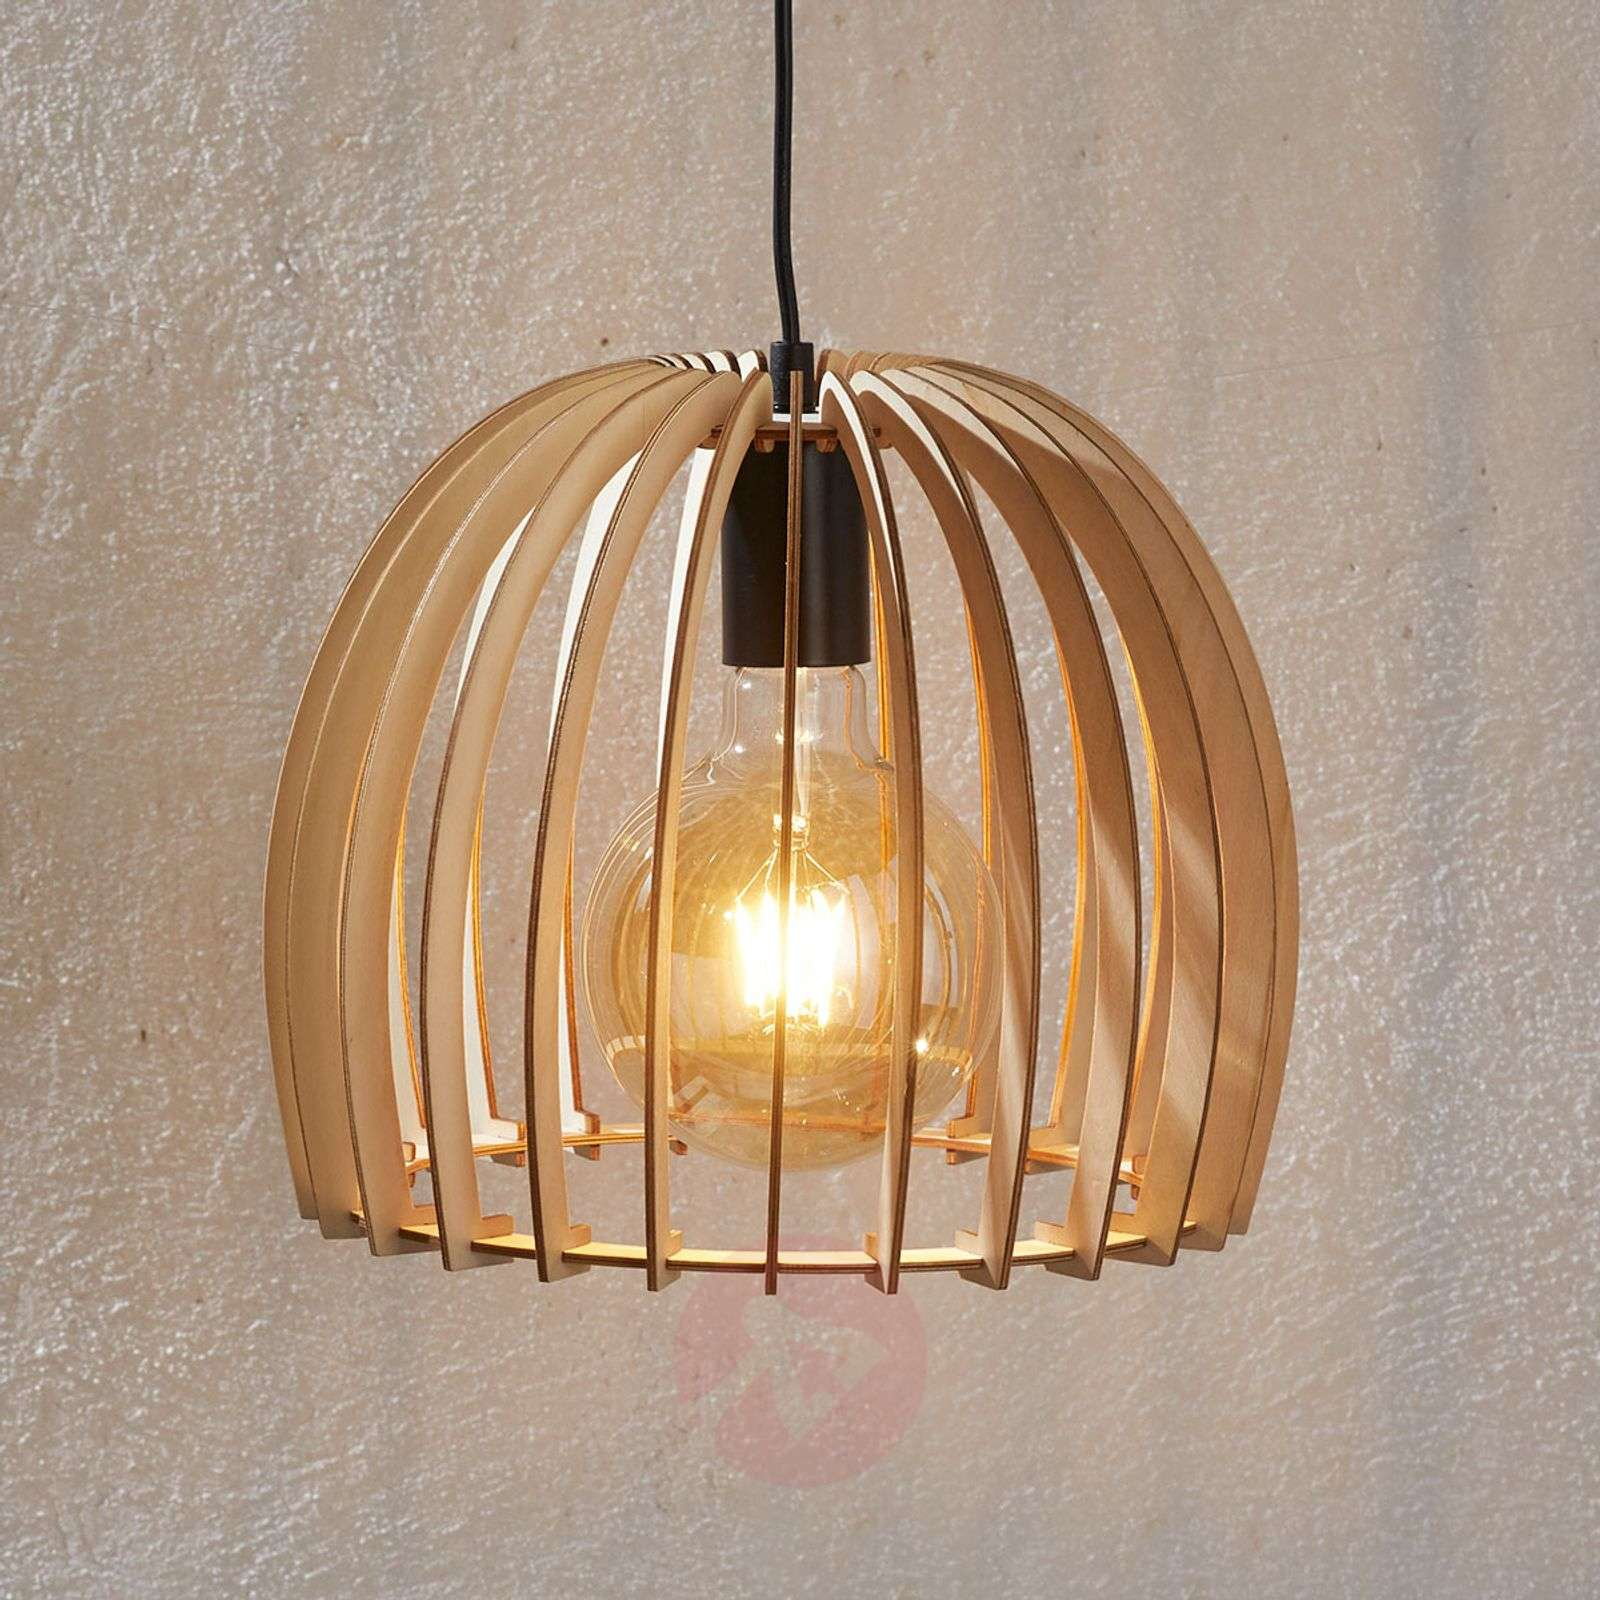 Suspension en bois Bela, Ø 30 cm-9620790-02